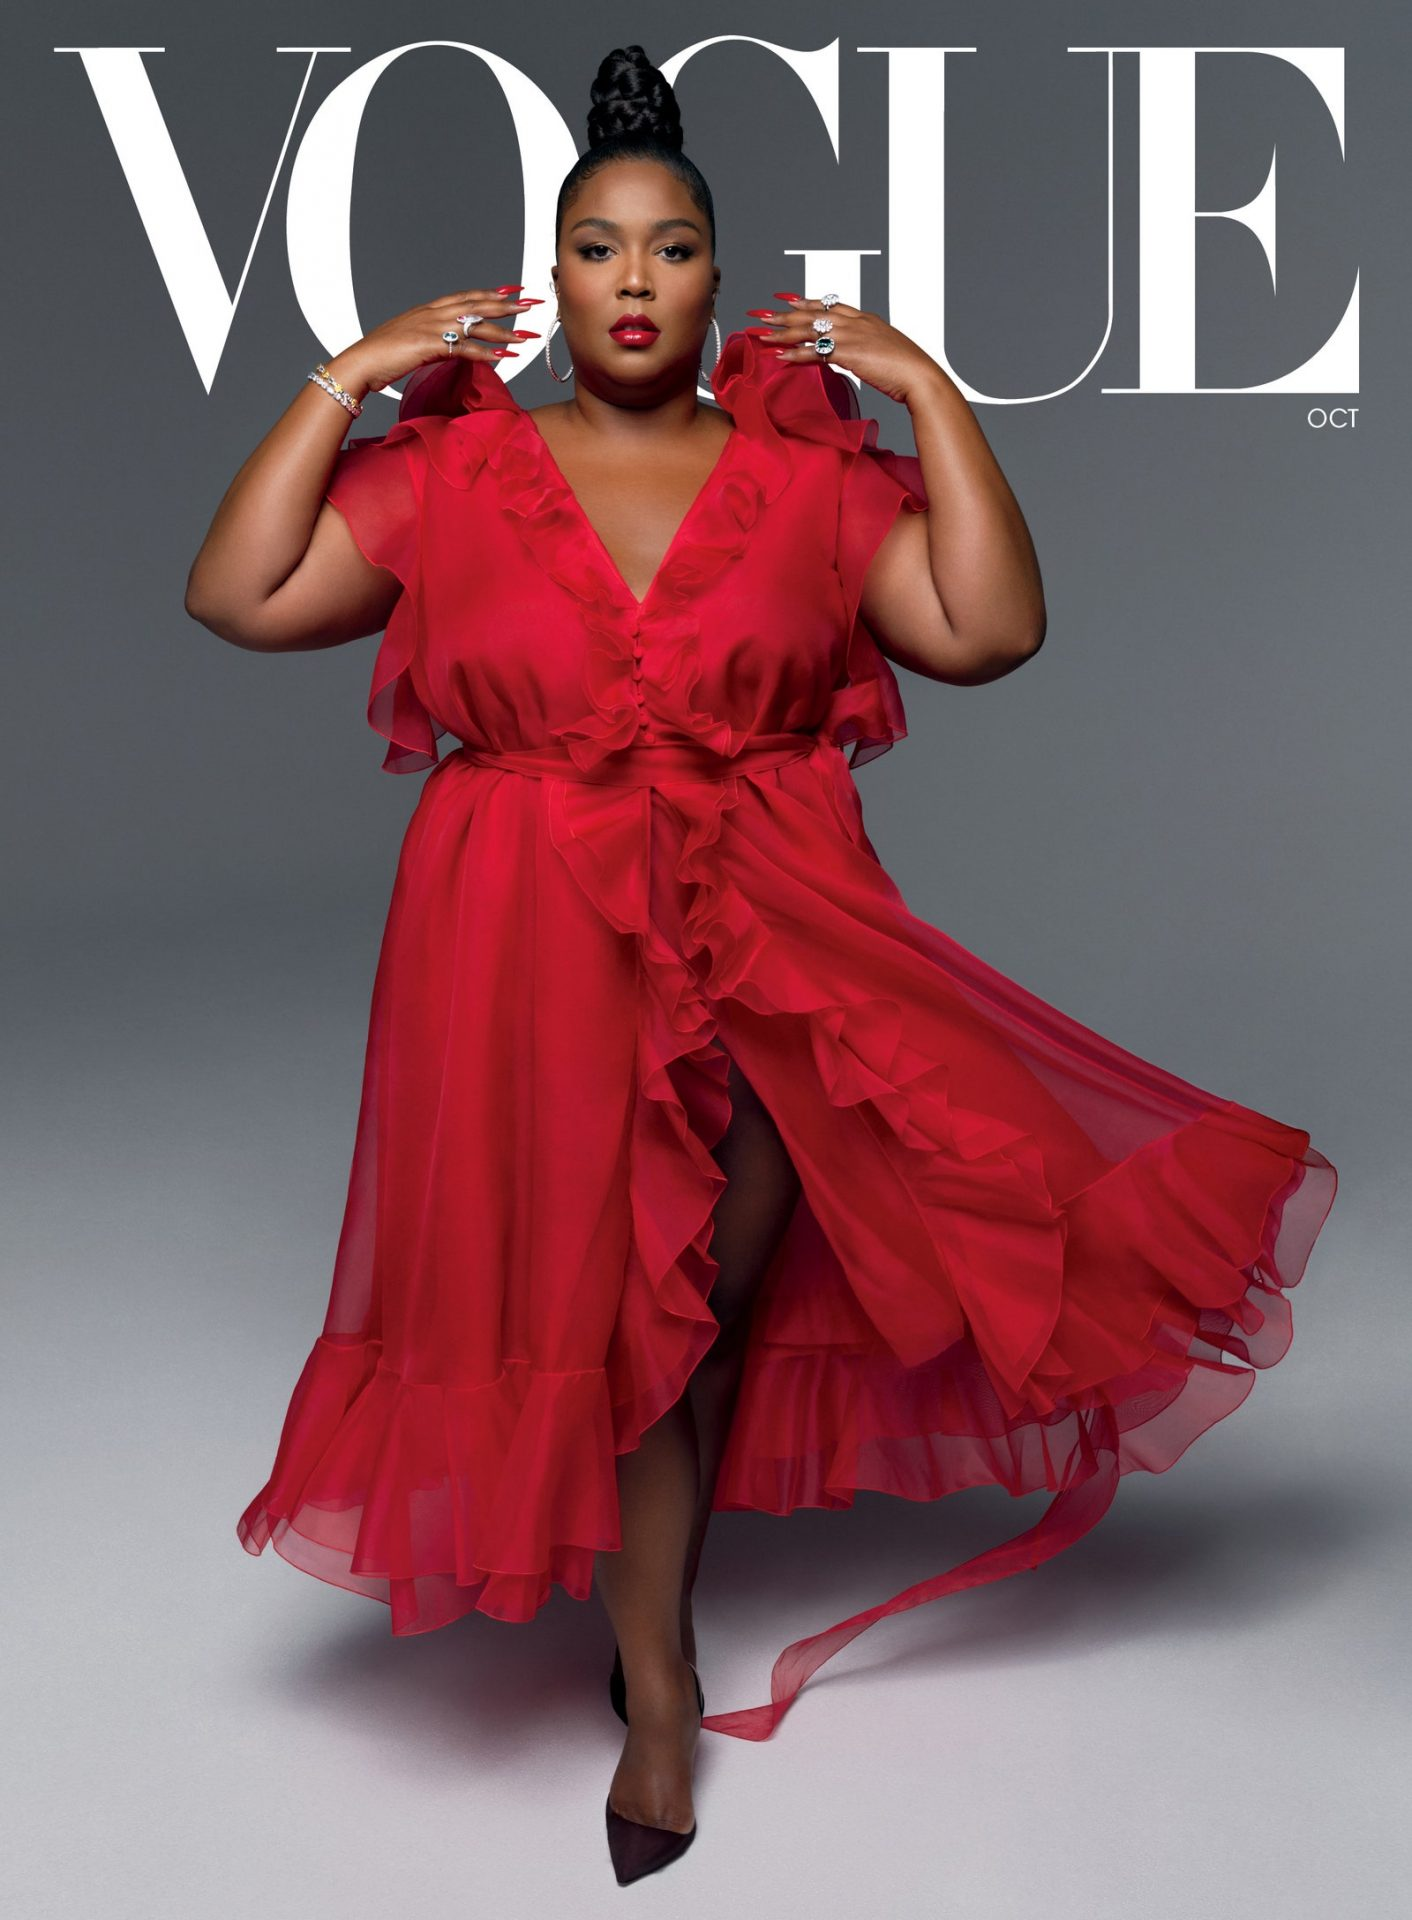 Lizzo Covers Vogue, Talks Election, Justice & Body Positivity